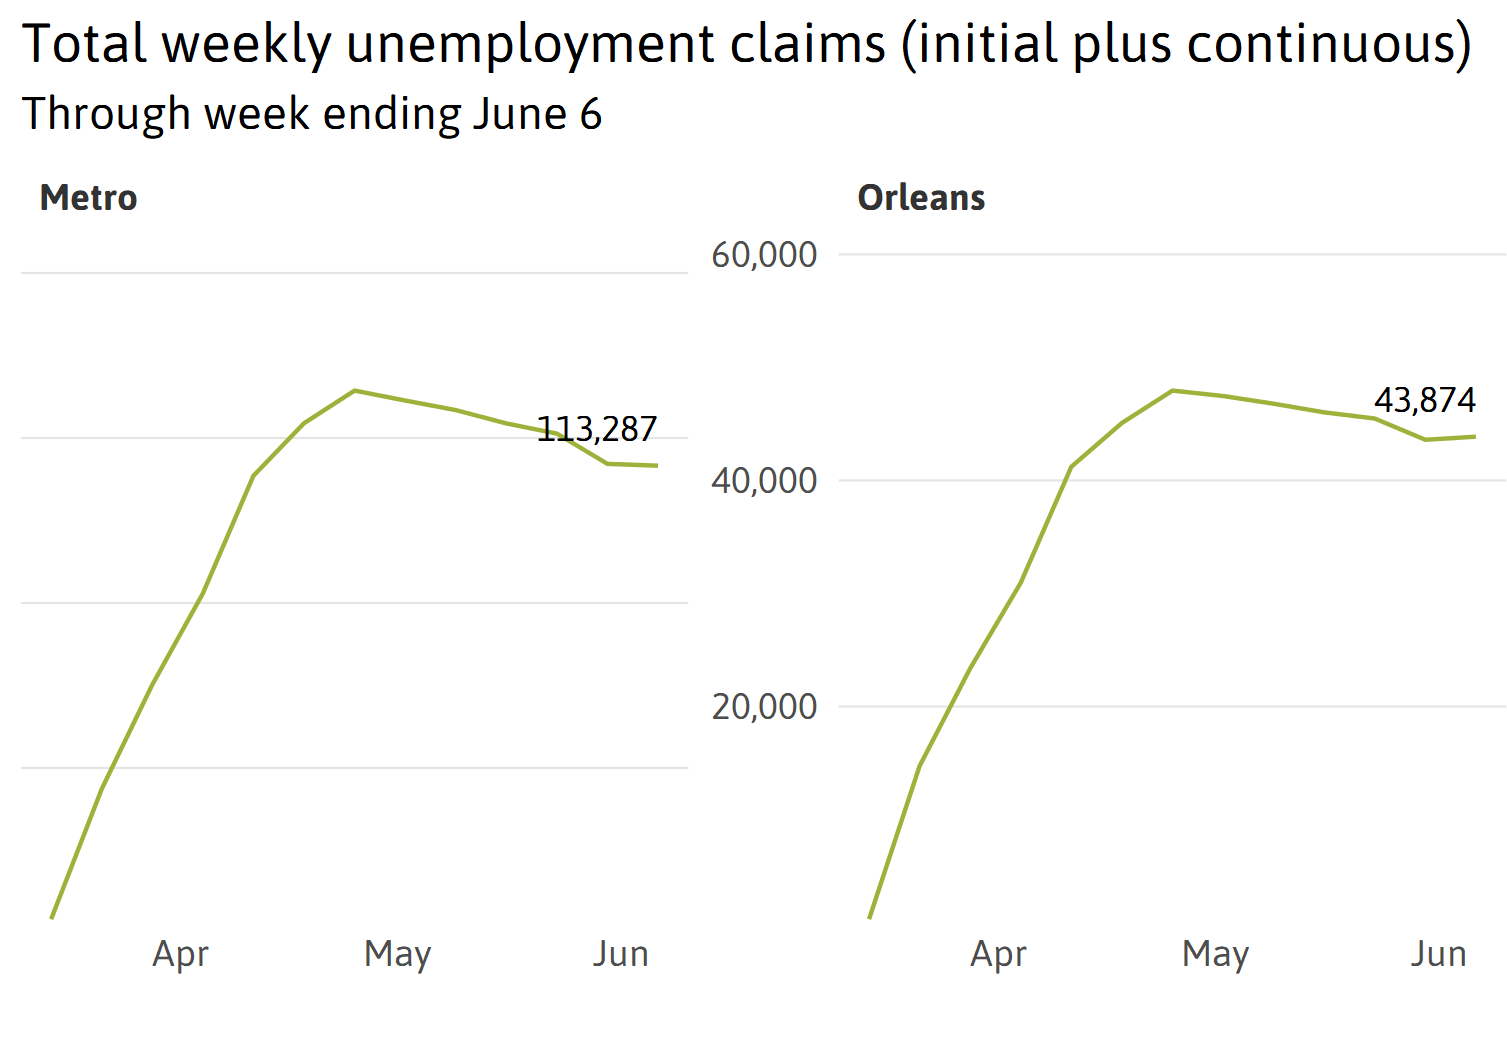 Coming into focus: Early indicators of pandemic job loss in the New Orleans metro area